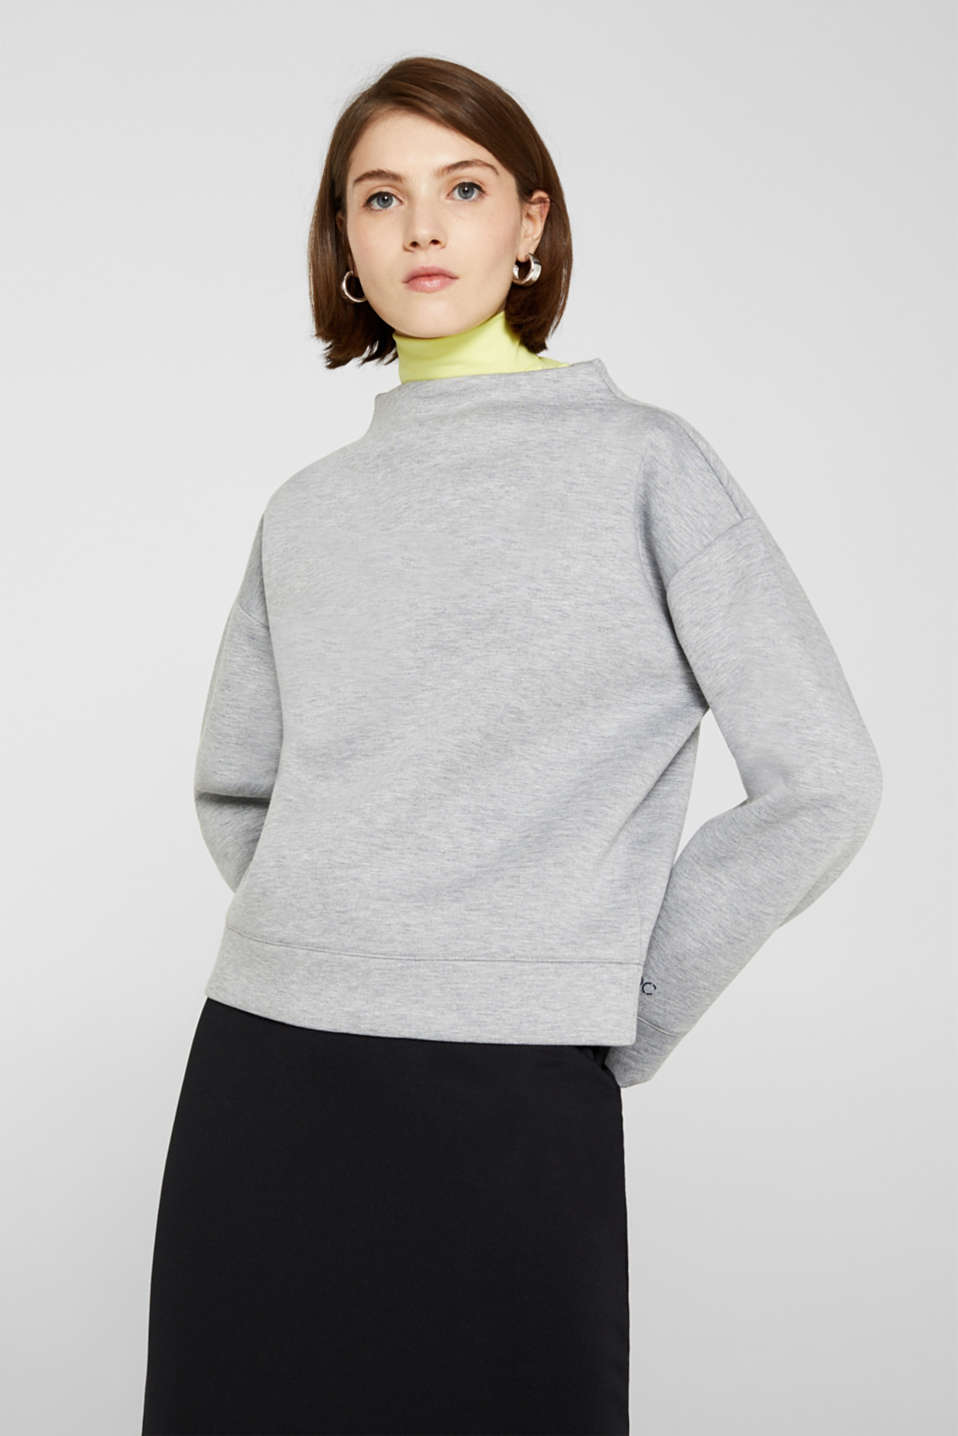 Compact sweatshirt with a stand-up collar, LIGHT GREY 5, detail image number 6